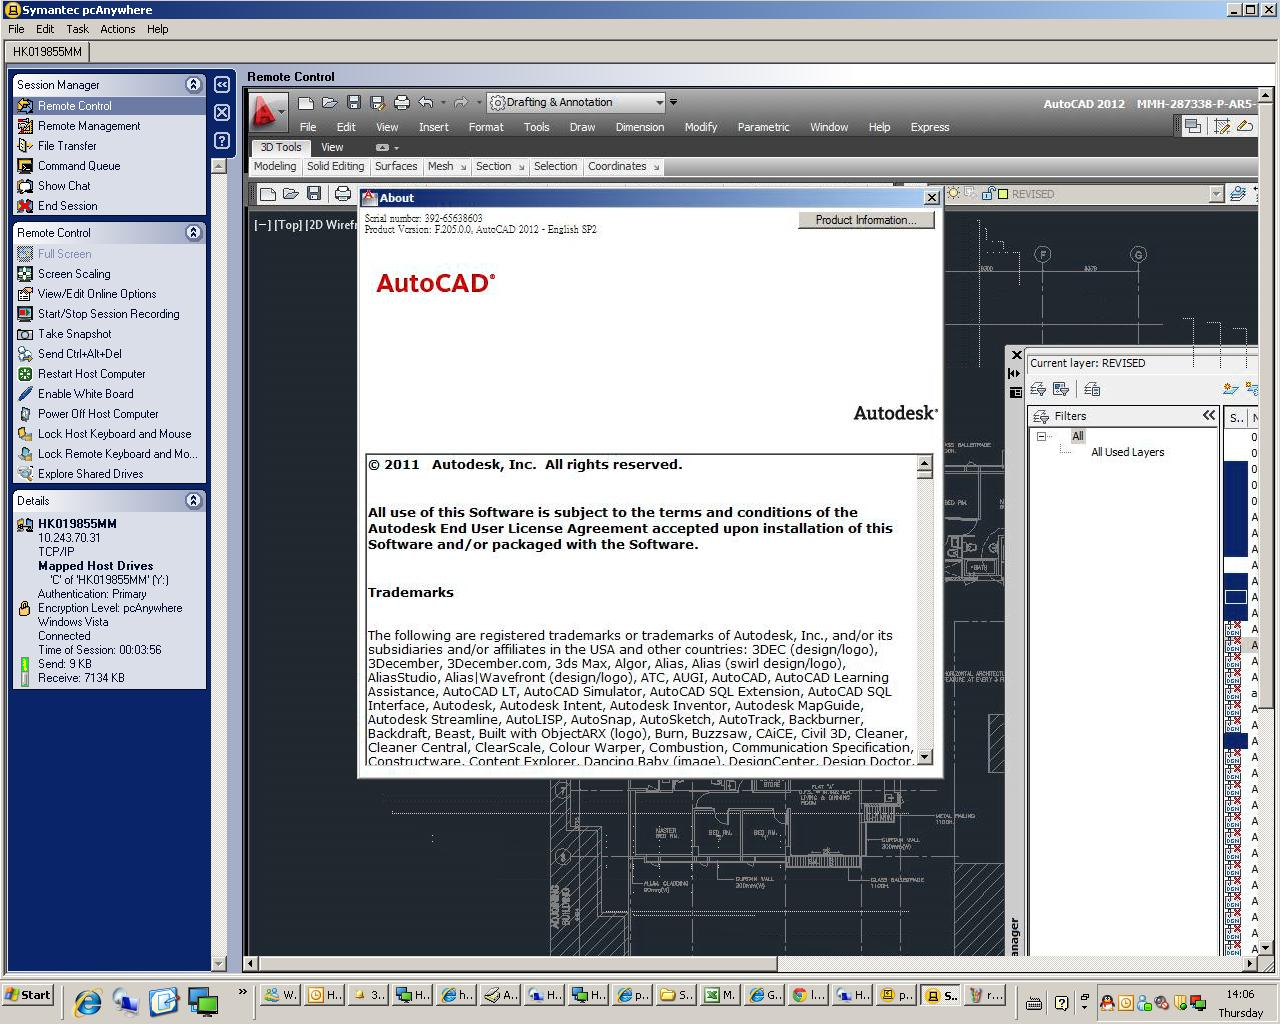 AutoCad 2012 SP2 version.JPG